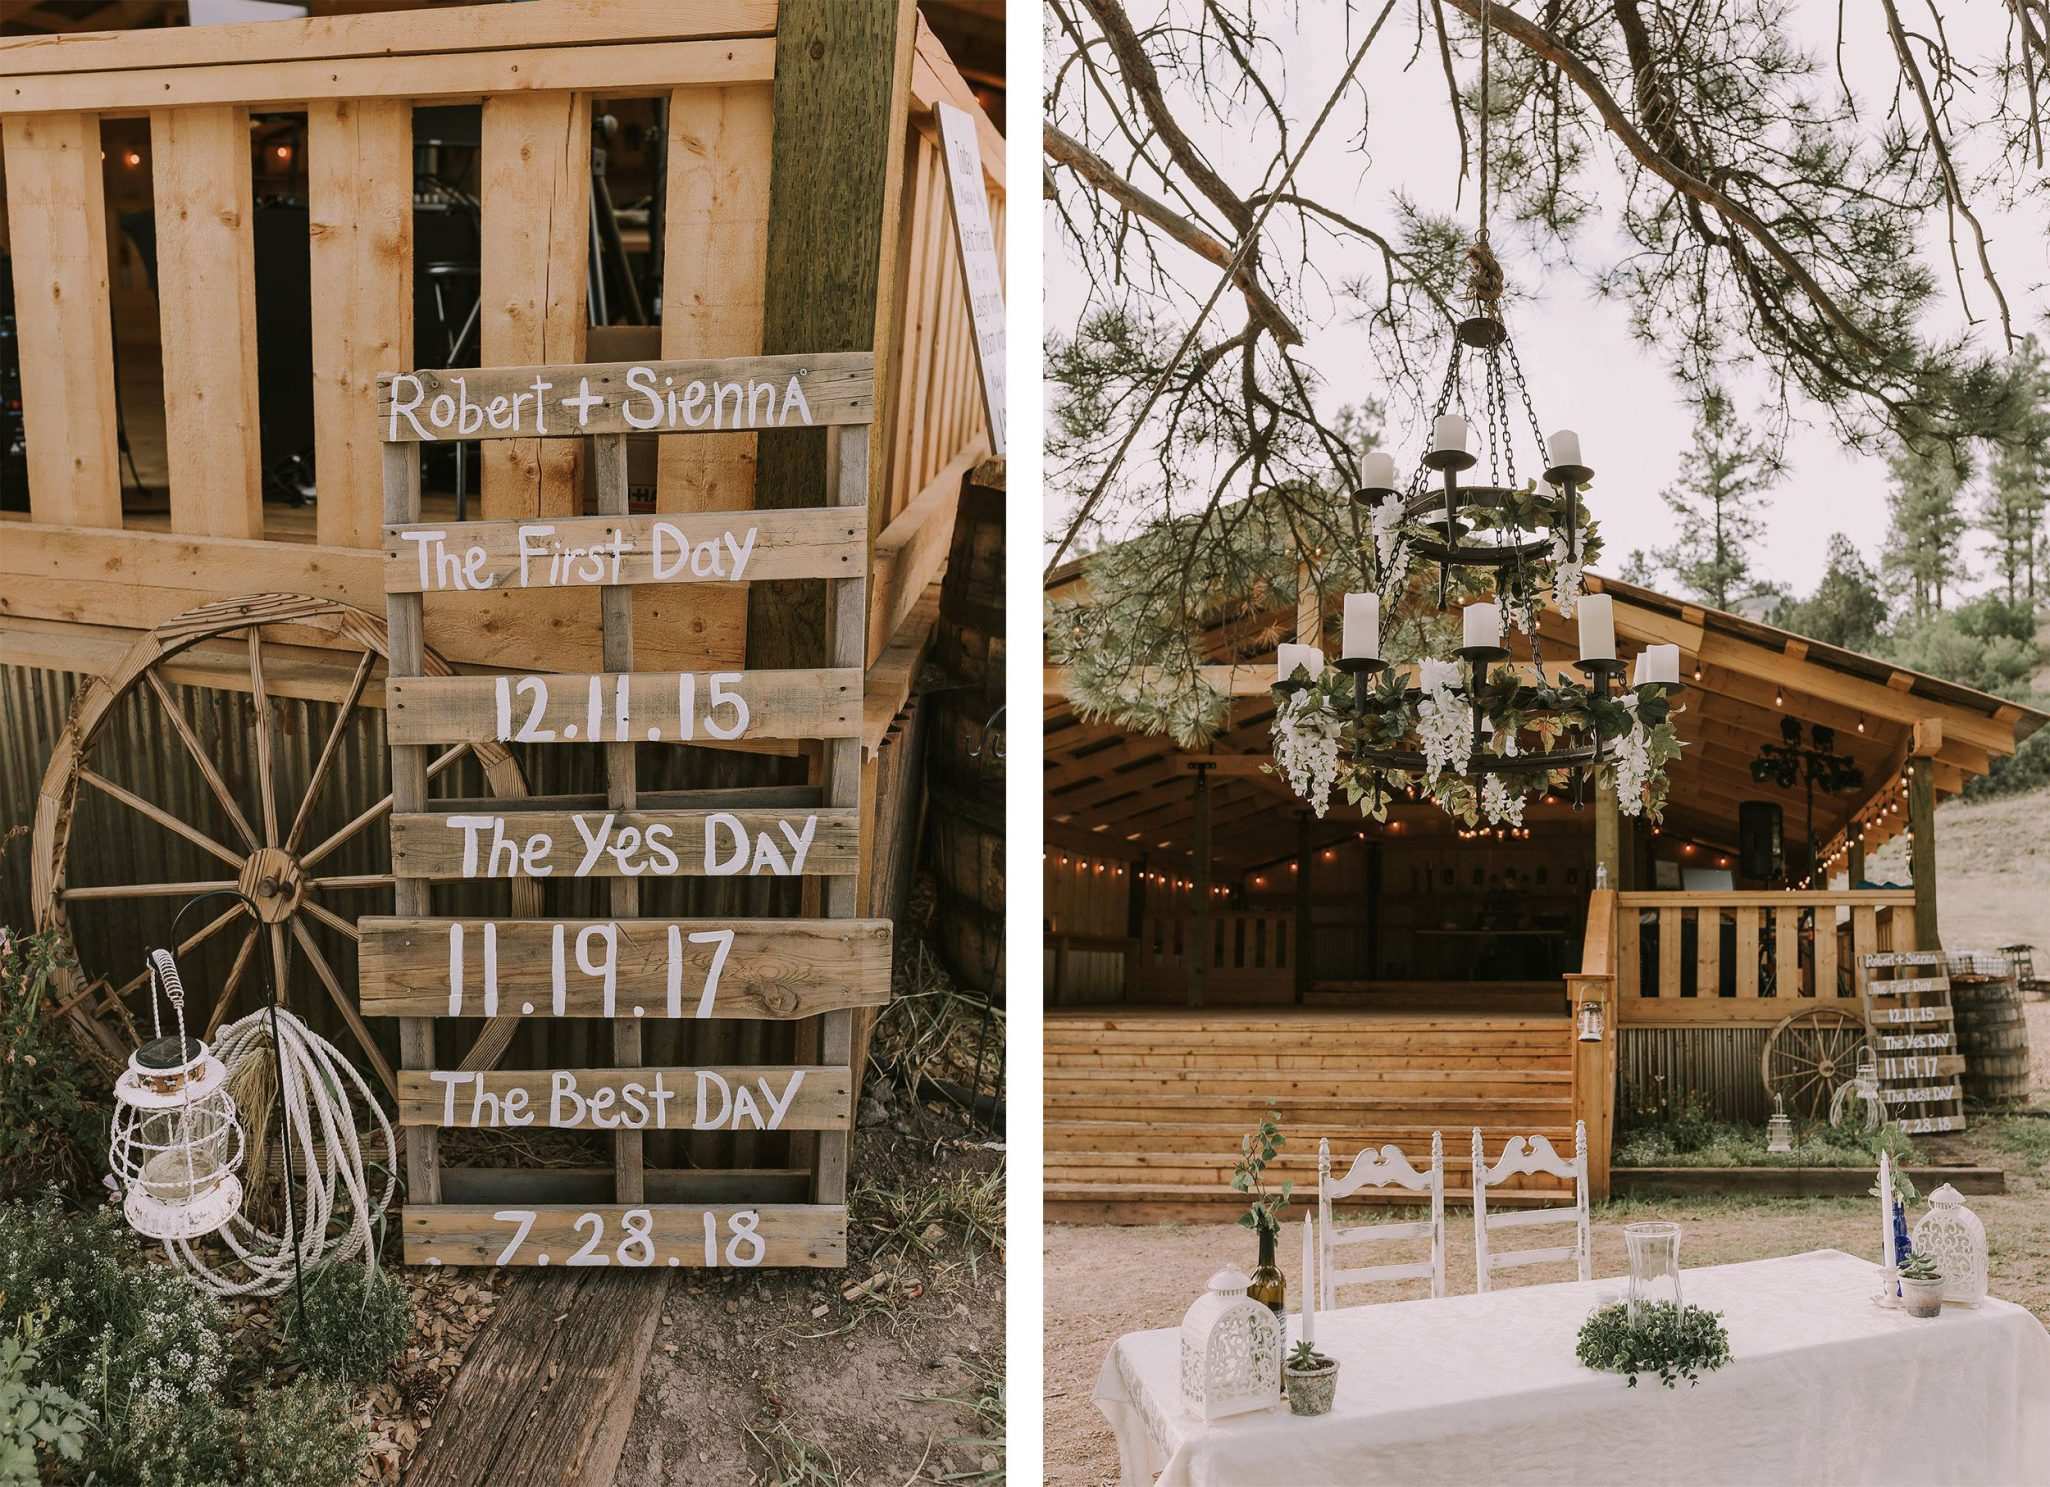 Rustic wedding decor at Paradise Ranch in Pagosa Springs, Colorado